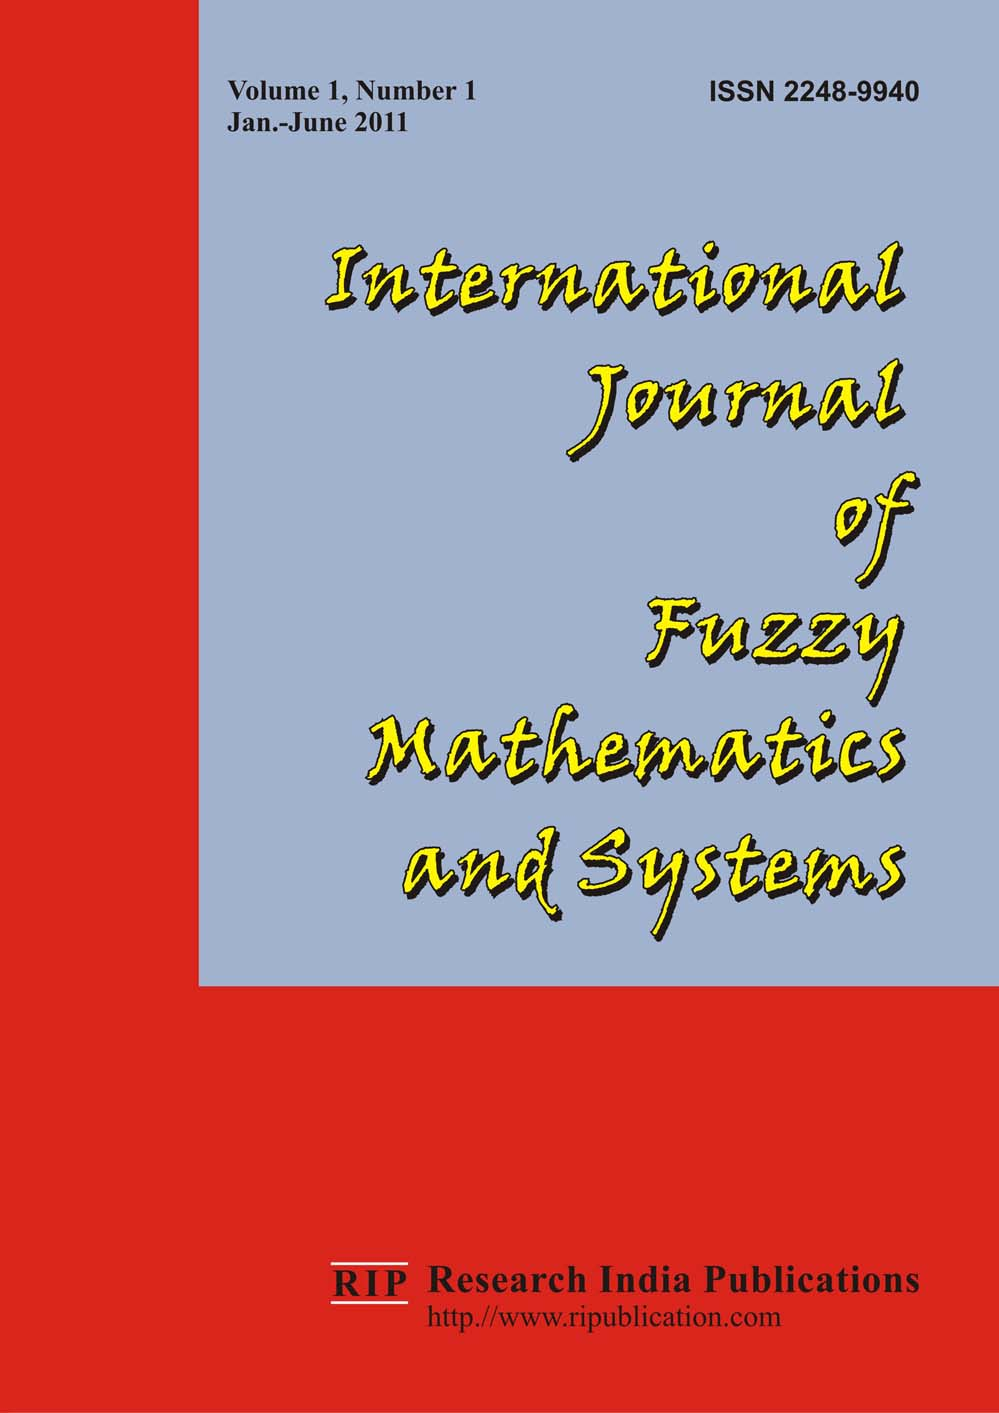 IJFMS International Journal of Fuzzy Mathematics and Systems